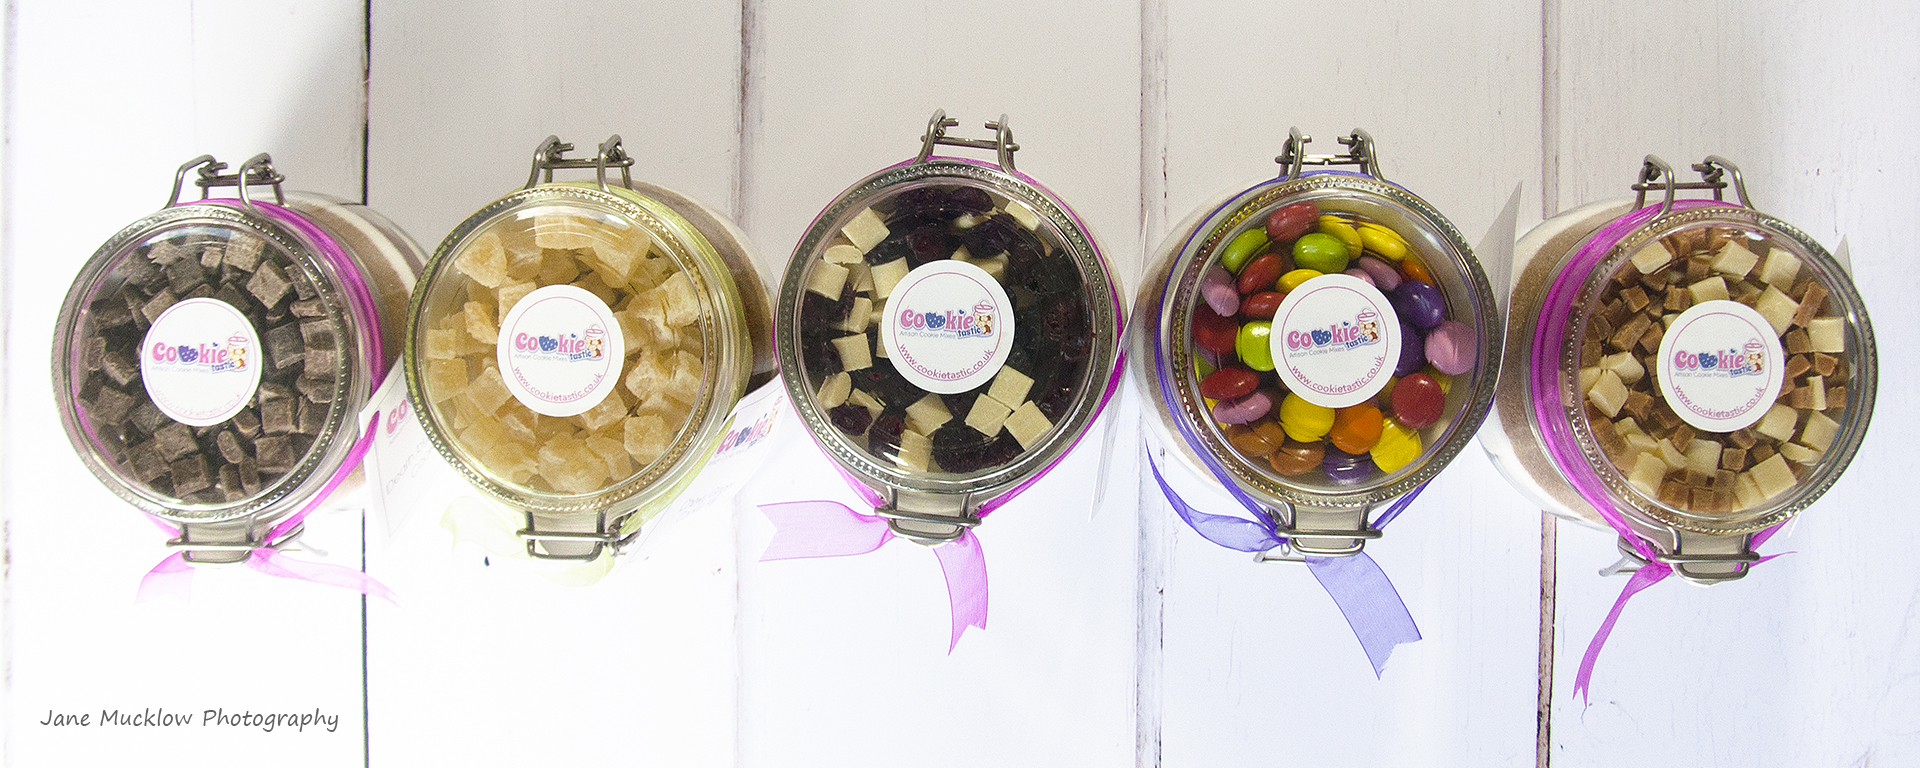 Cookie jars by Cookietastic, marketing shot example by Jane Mucklow